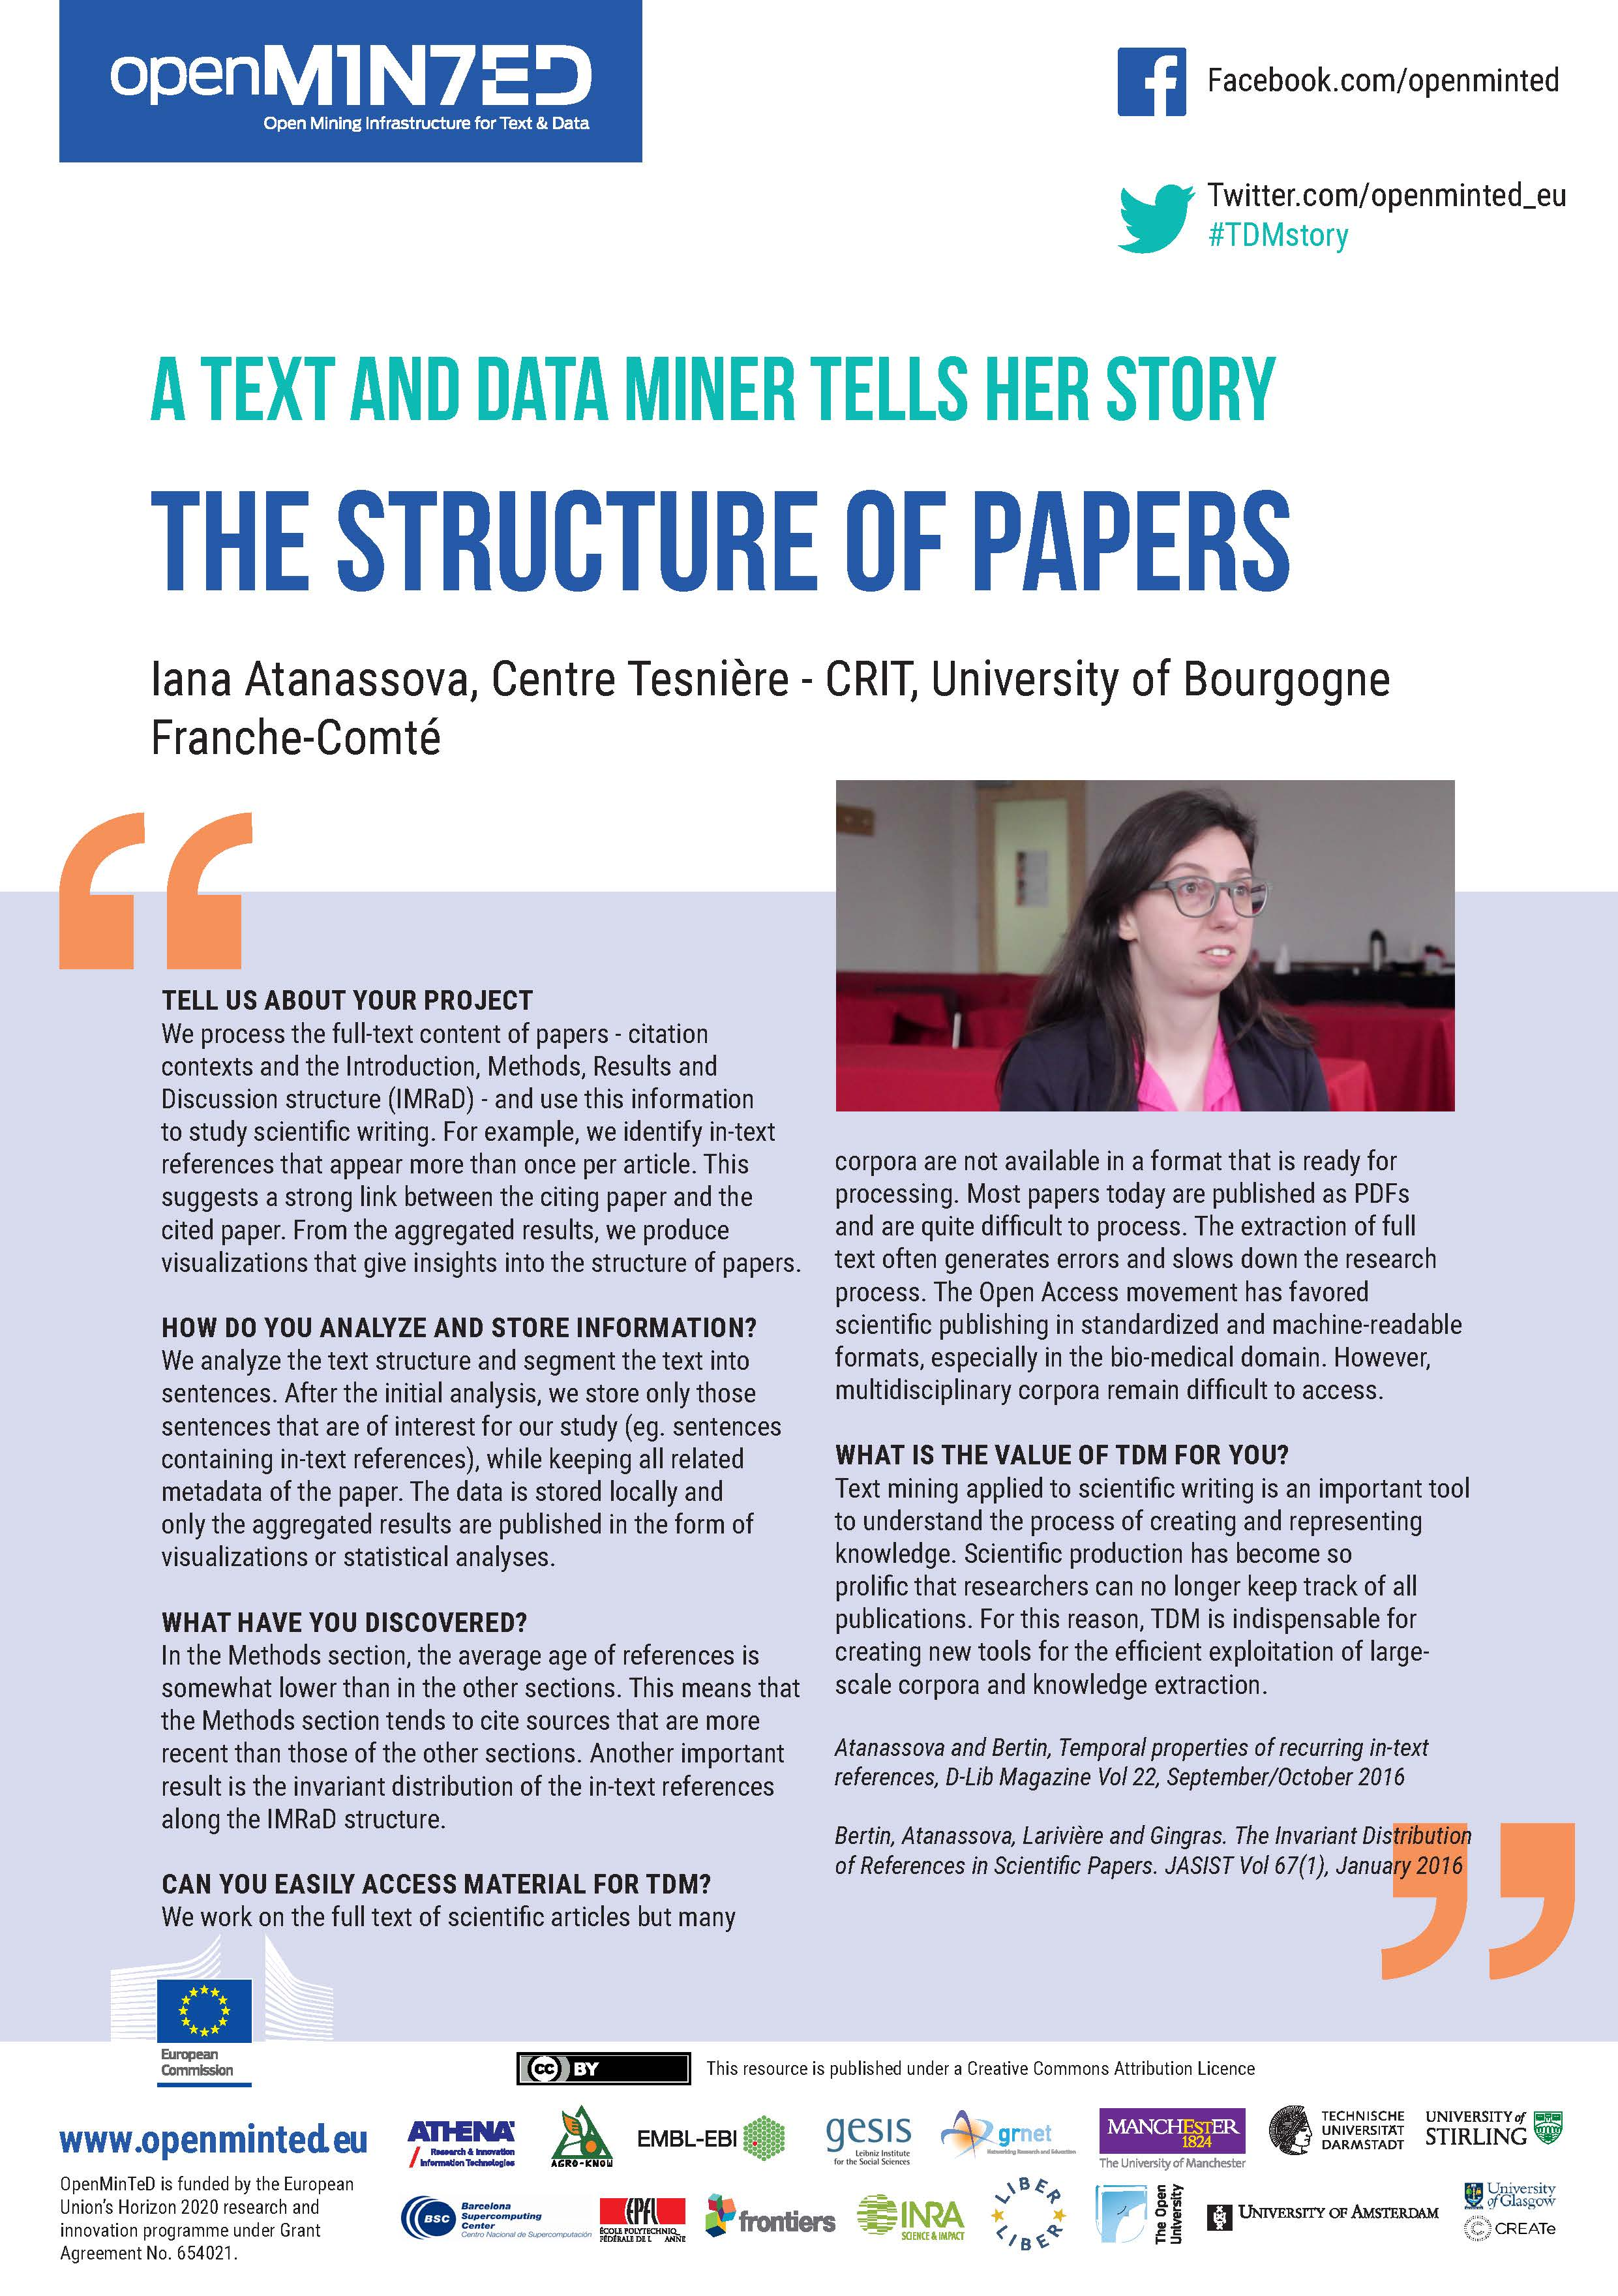 TDM Stories: The Structure of Papers